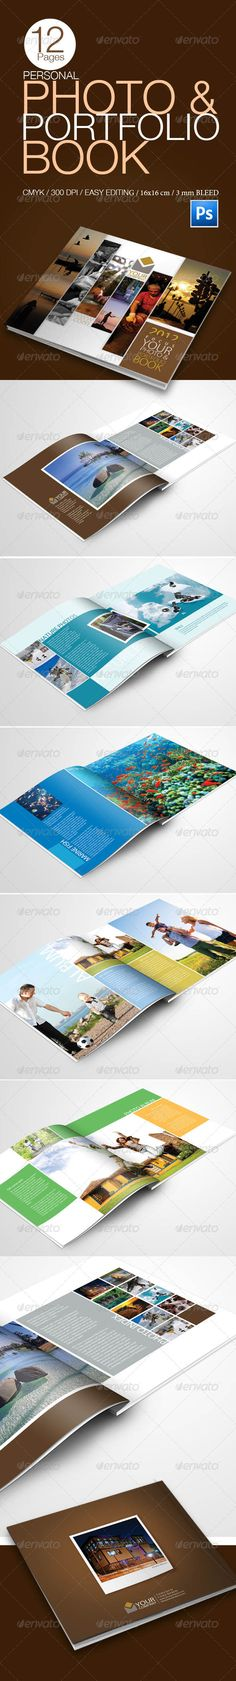 Your Photo & Portfolio Book